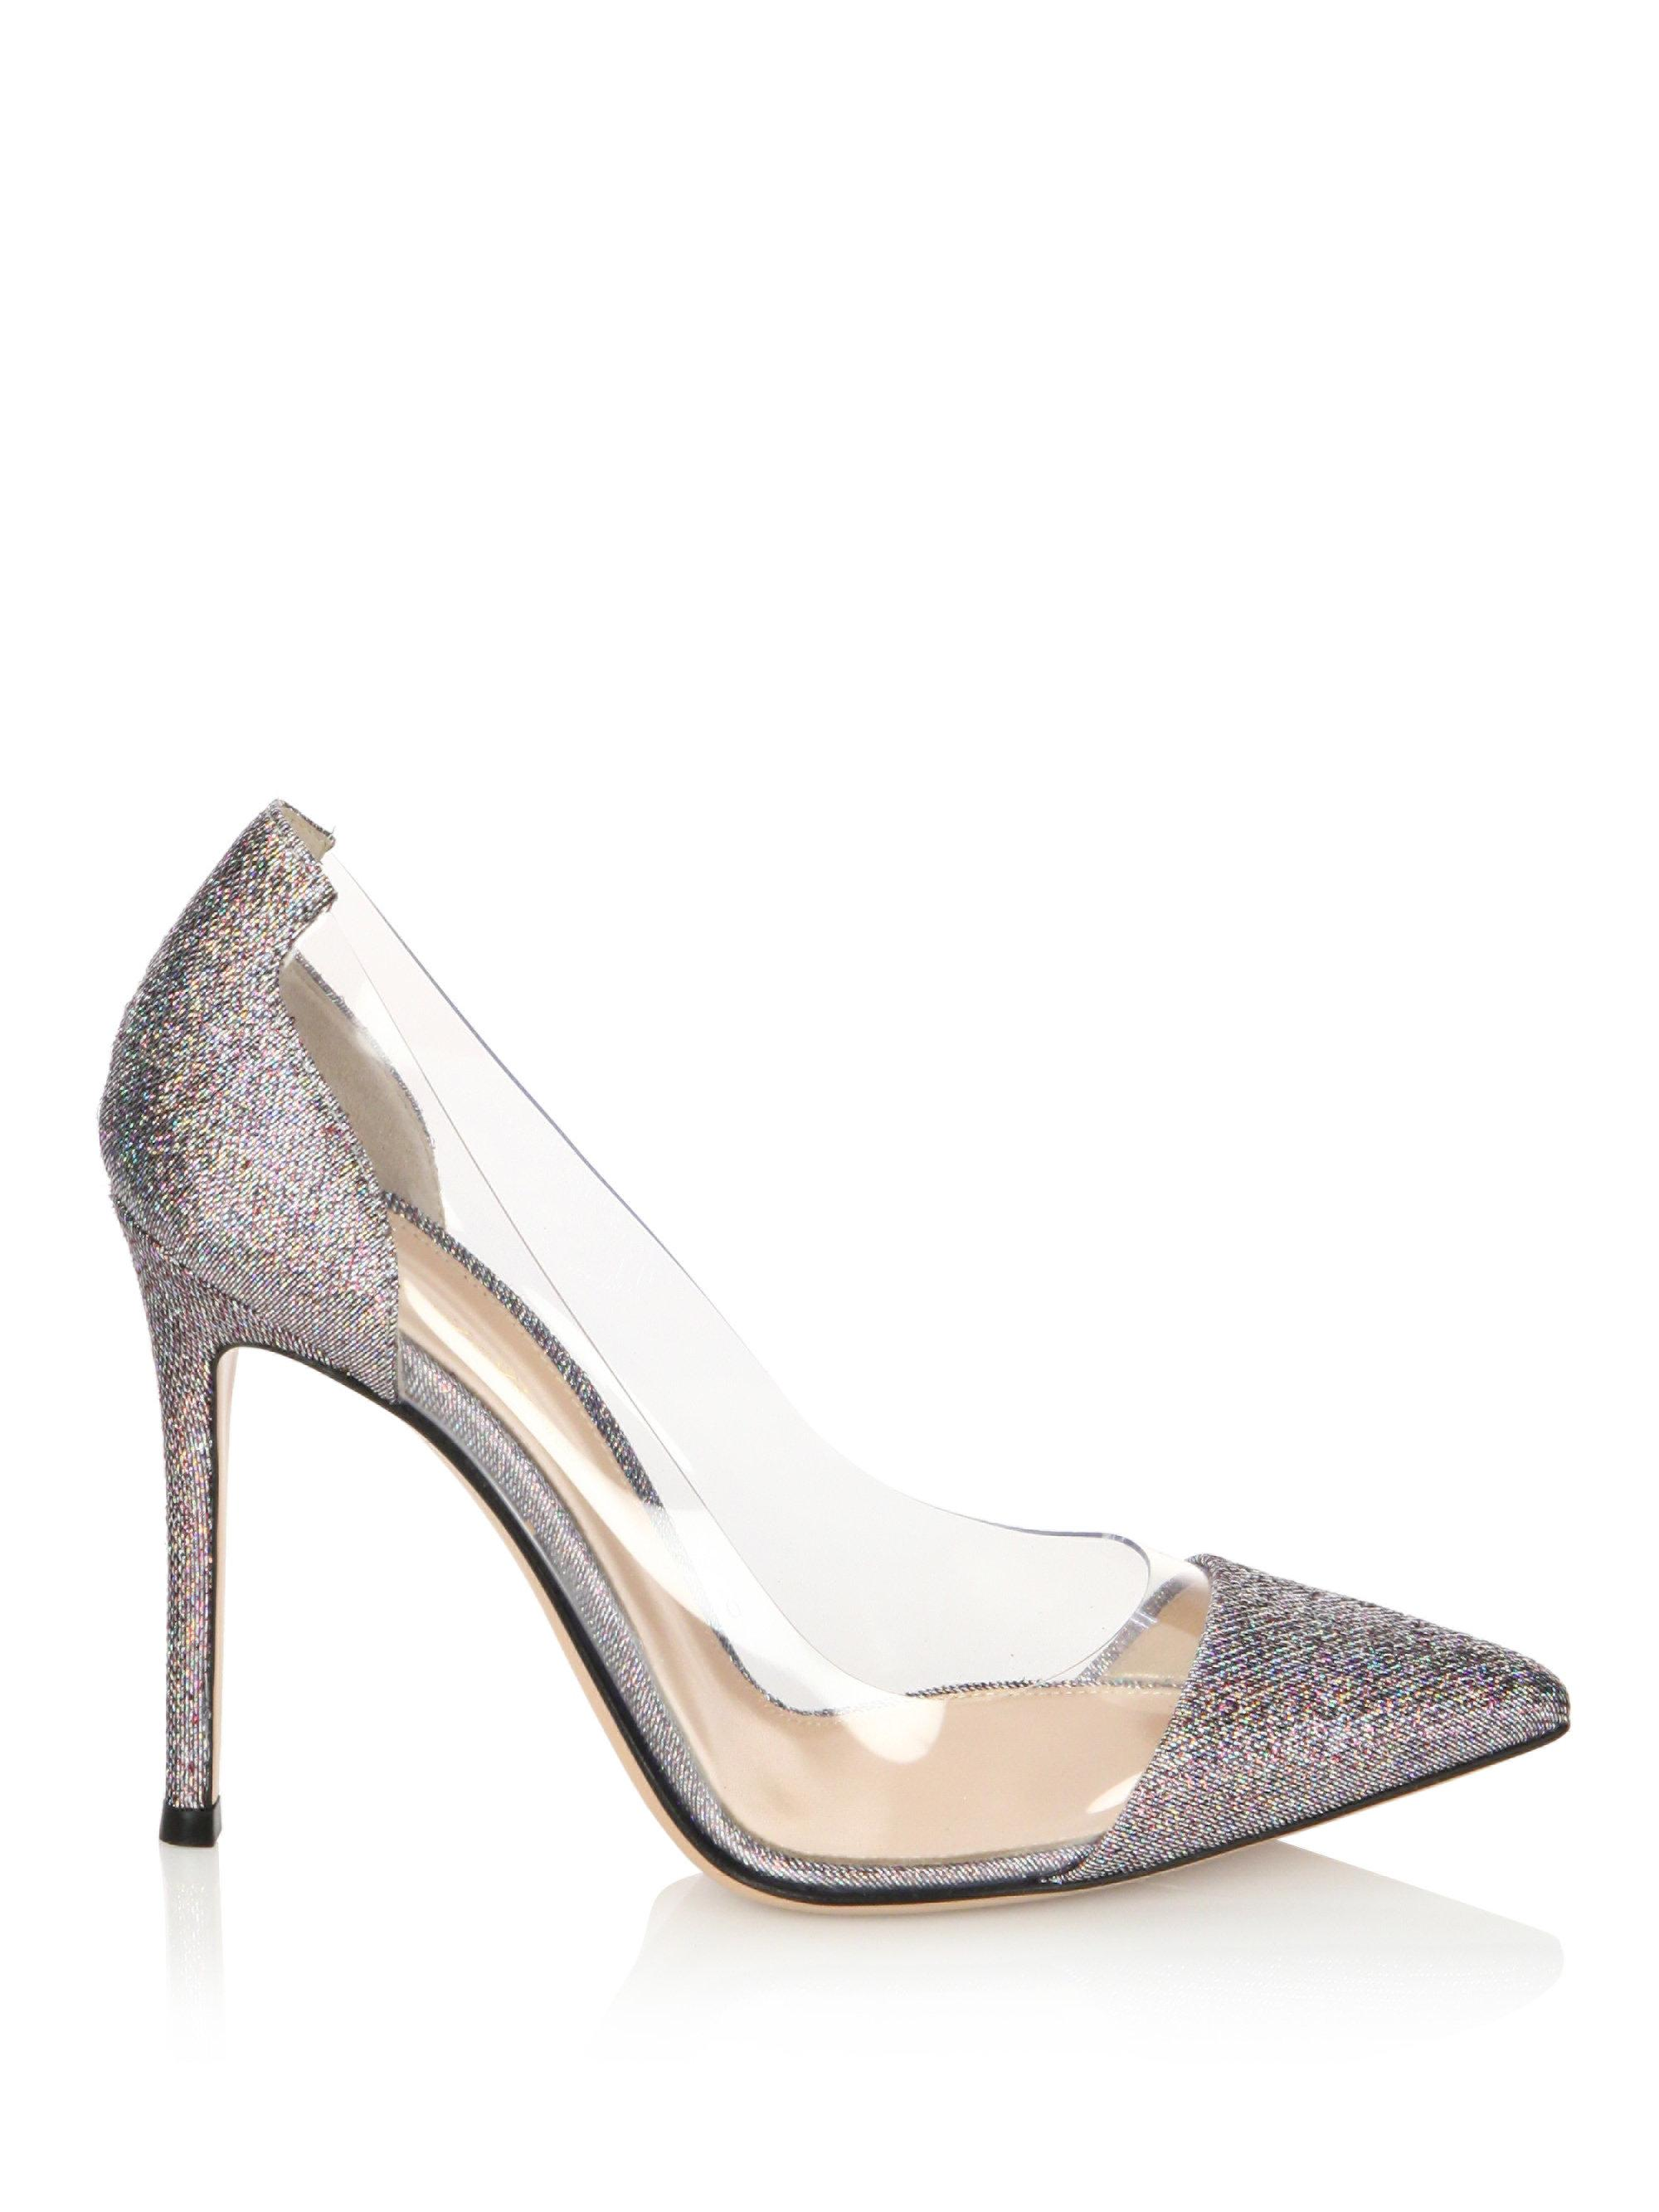 Gianvito Rossi PVC Snakeskin Pumps sale clearance discount ebay 2014 newest sale under $60 6sjrT2E